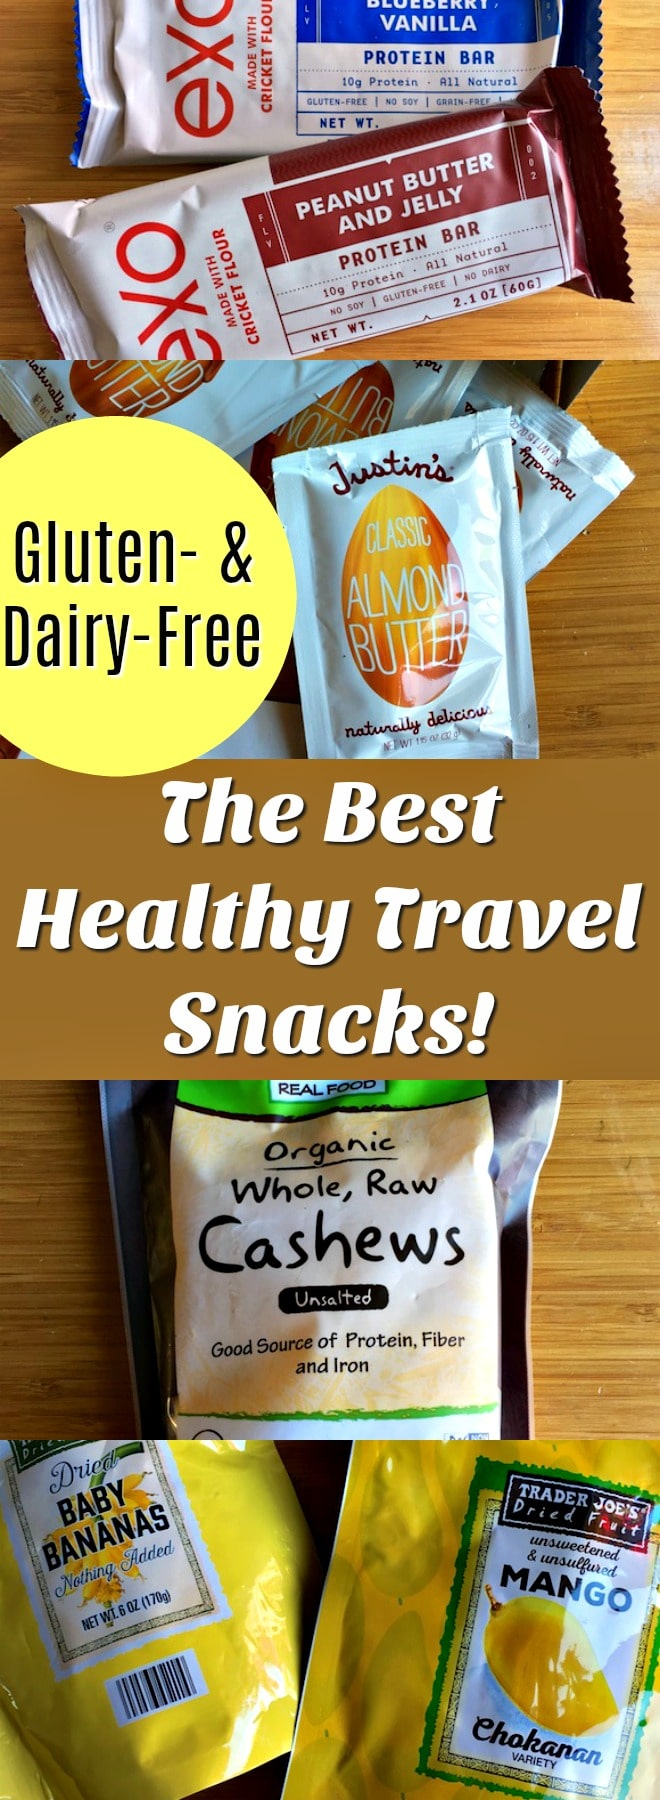 The Best Healthy Travel Snacks that are all gluten- and dairy-free! Grab and go snacks that make healthy travel easy. | gluten-free, dairy-free, healthy travel, healthy snacks, real food snacks